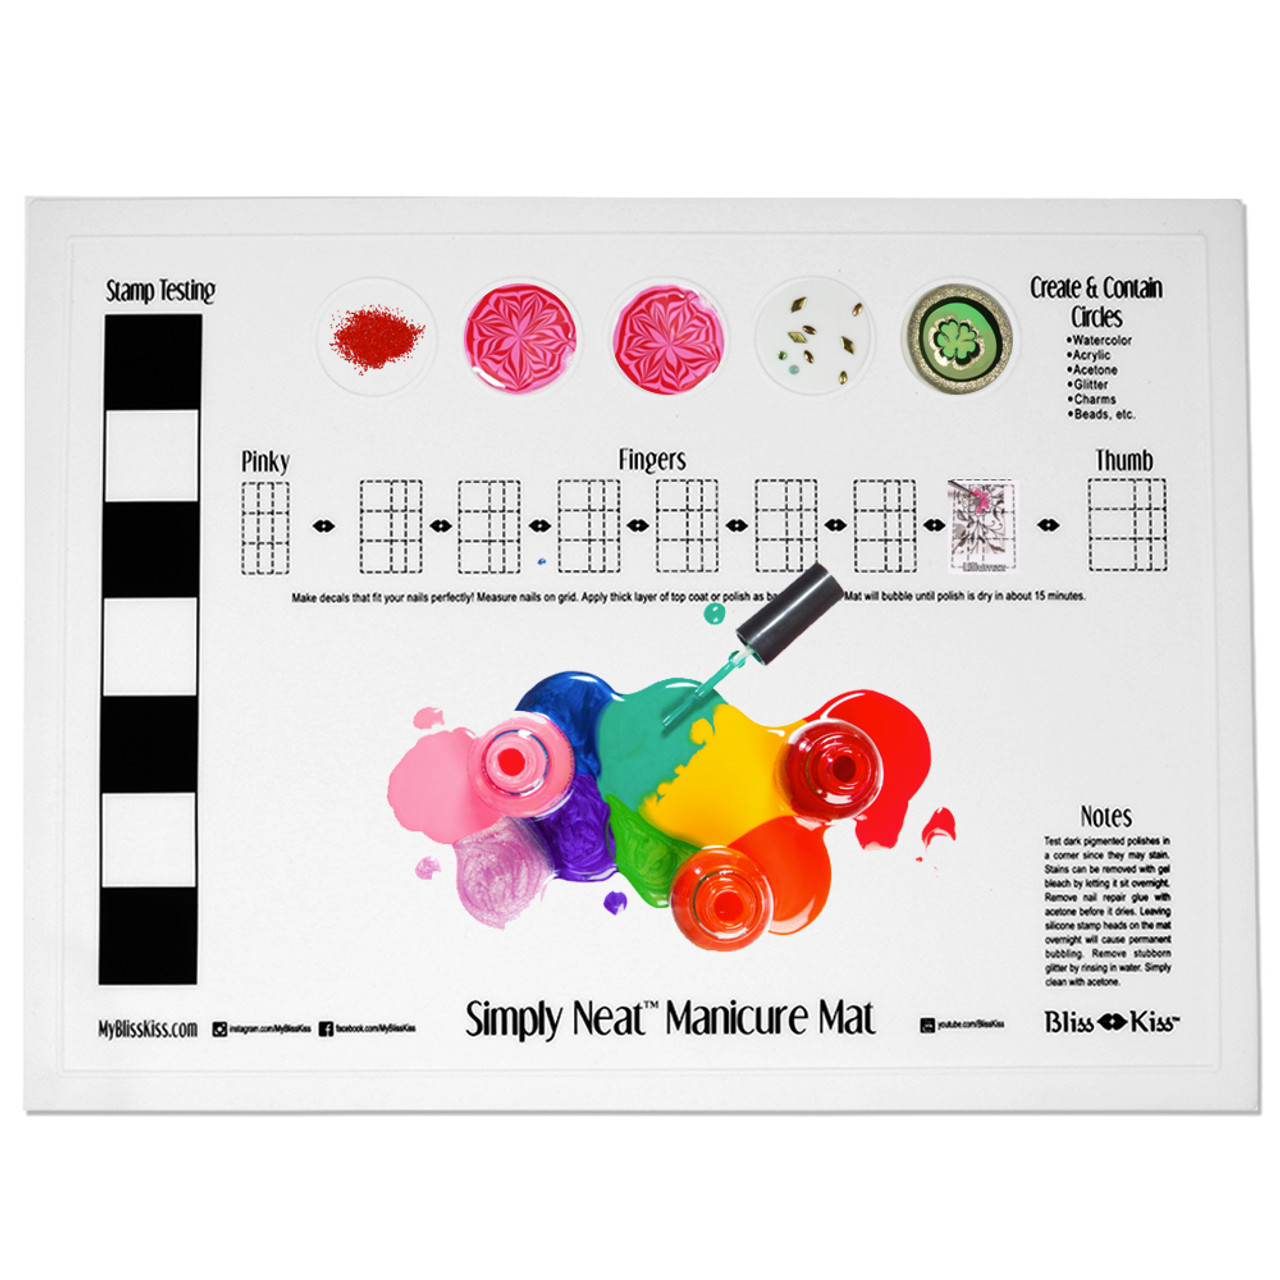 The Simply Neat™ Manicure Mat has a unique raised edge Create & Contain  Circles that help you prevent spills and keeps your creativity neatly contained to the mat... and not all over your workspace.